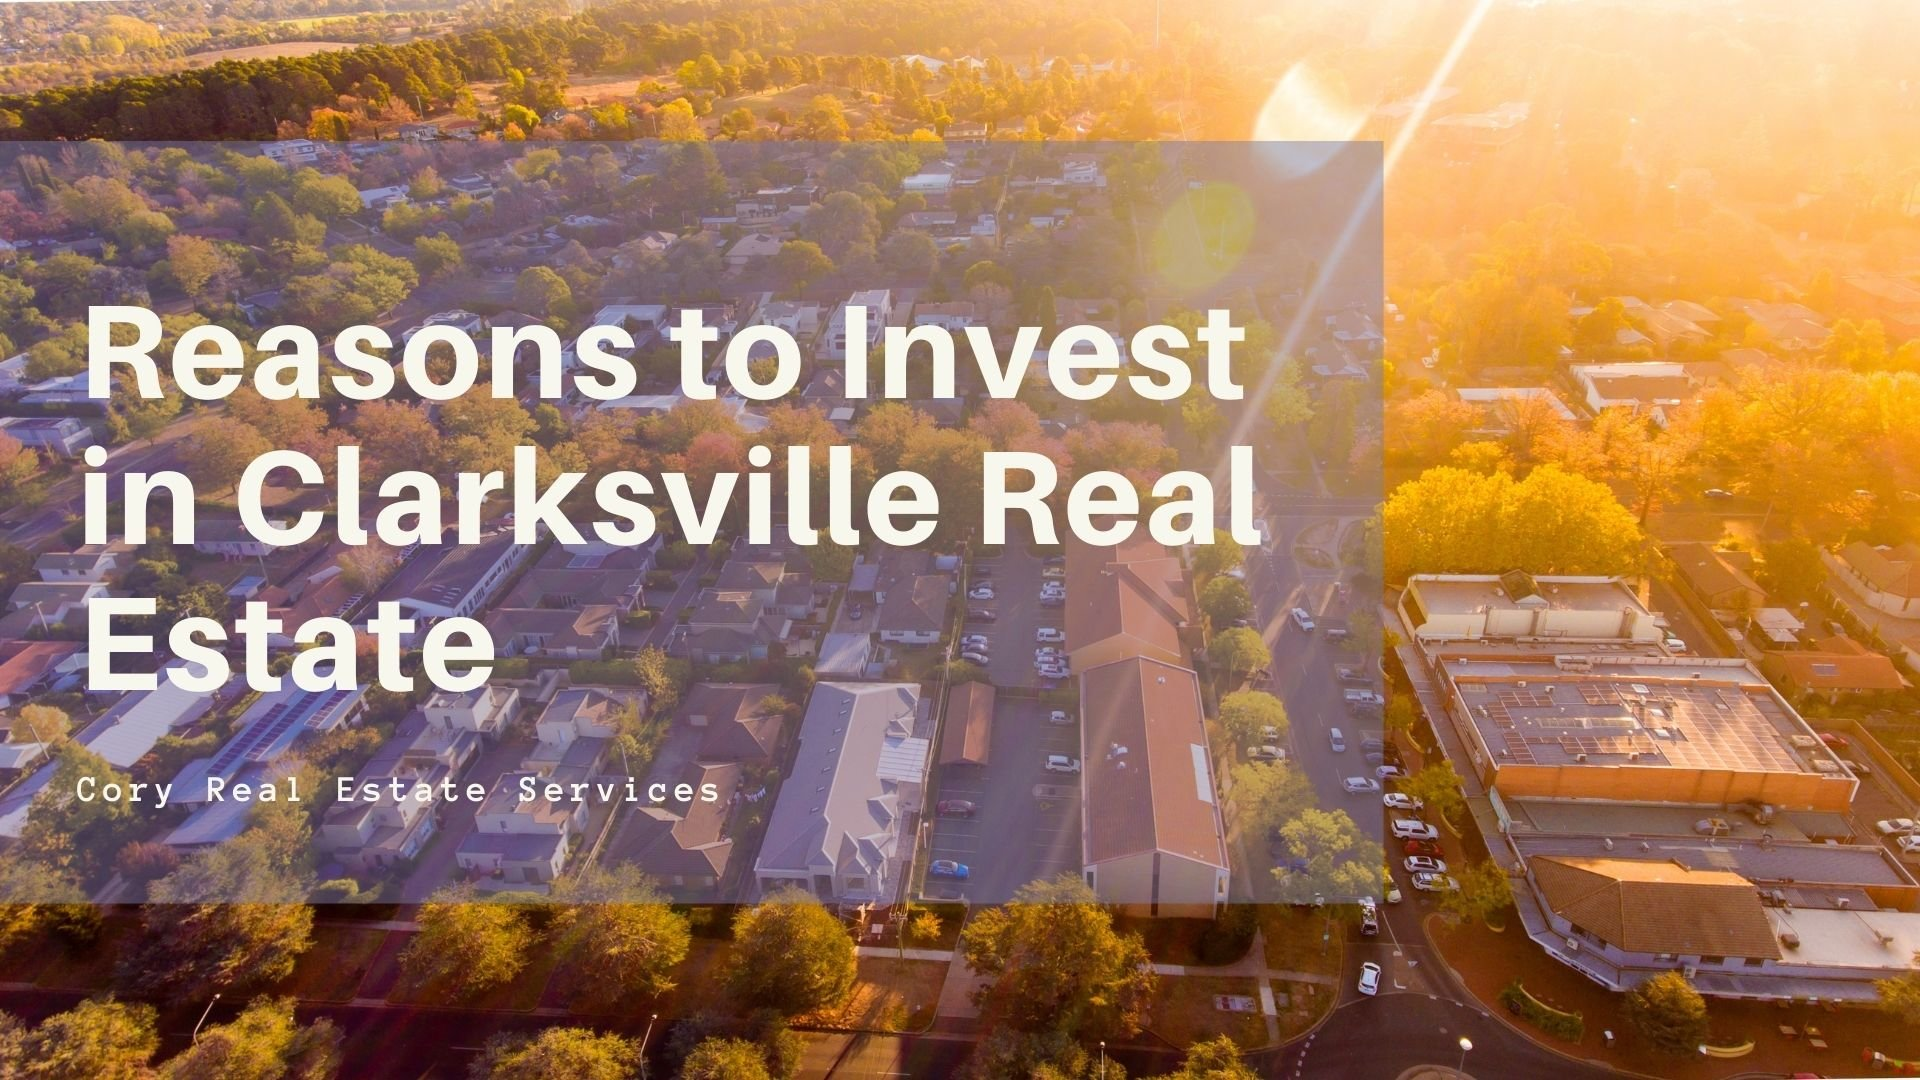 clarksville real estate investing